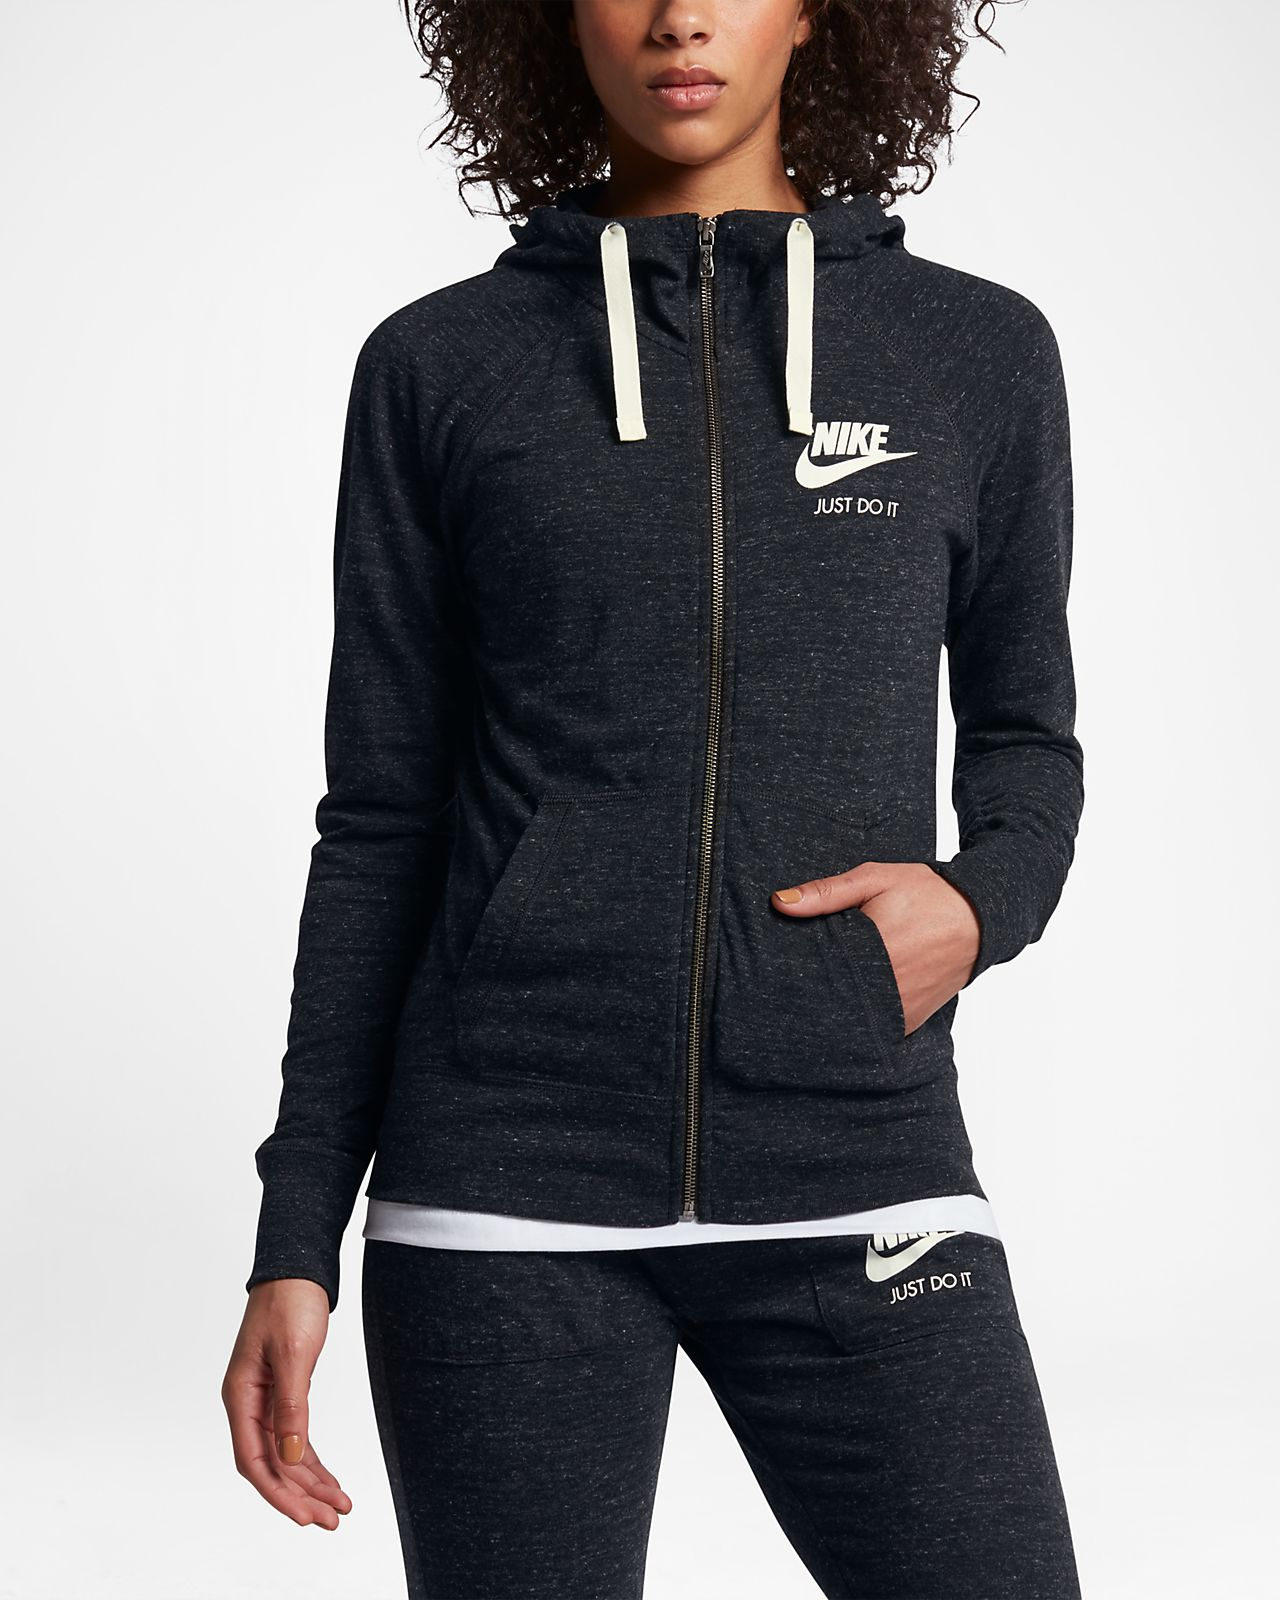 the best attitude 37fbe f9e9a Women s Full-Zip Hoodie. Nike Sportswear Gym Vintage